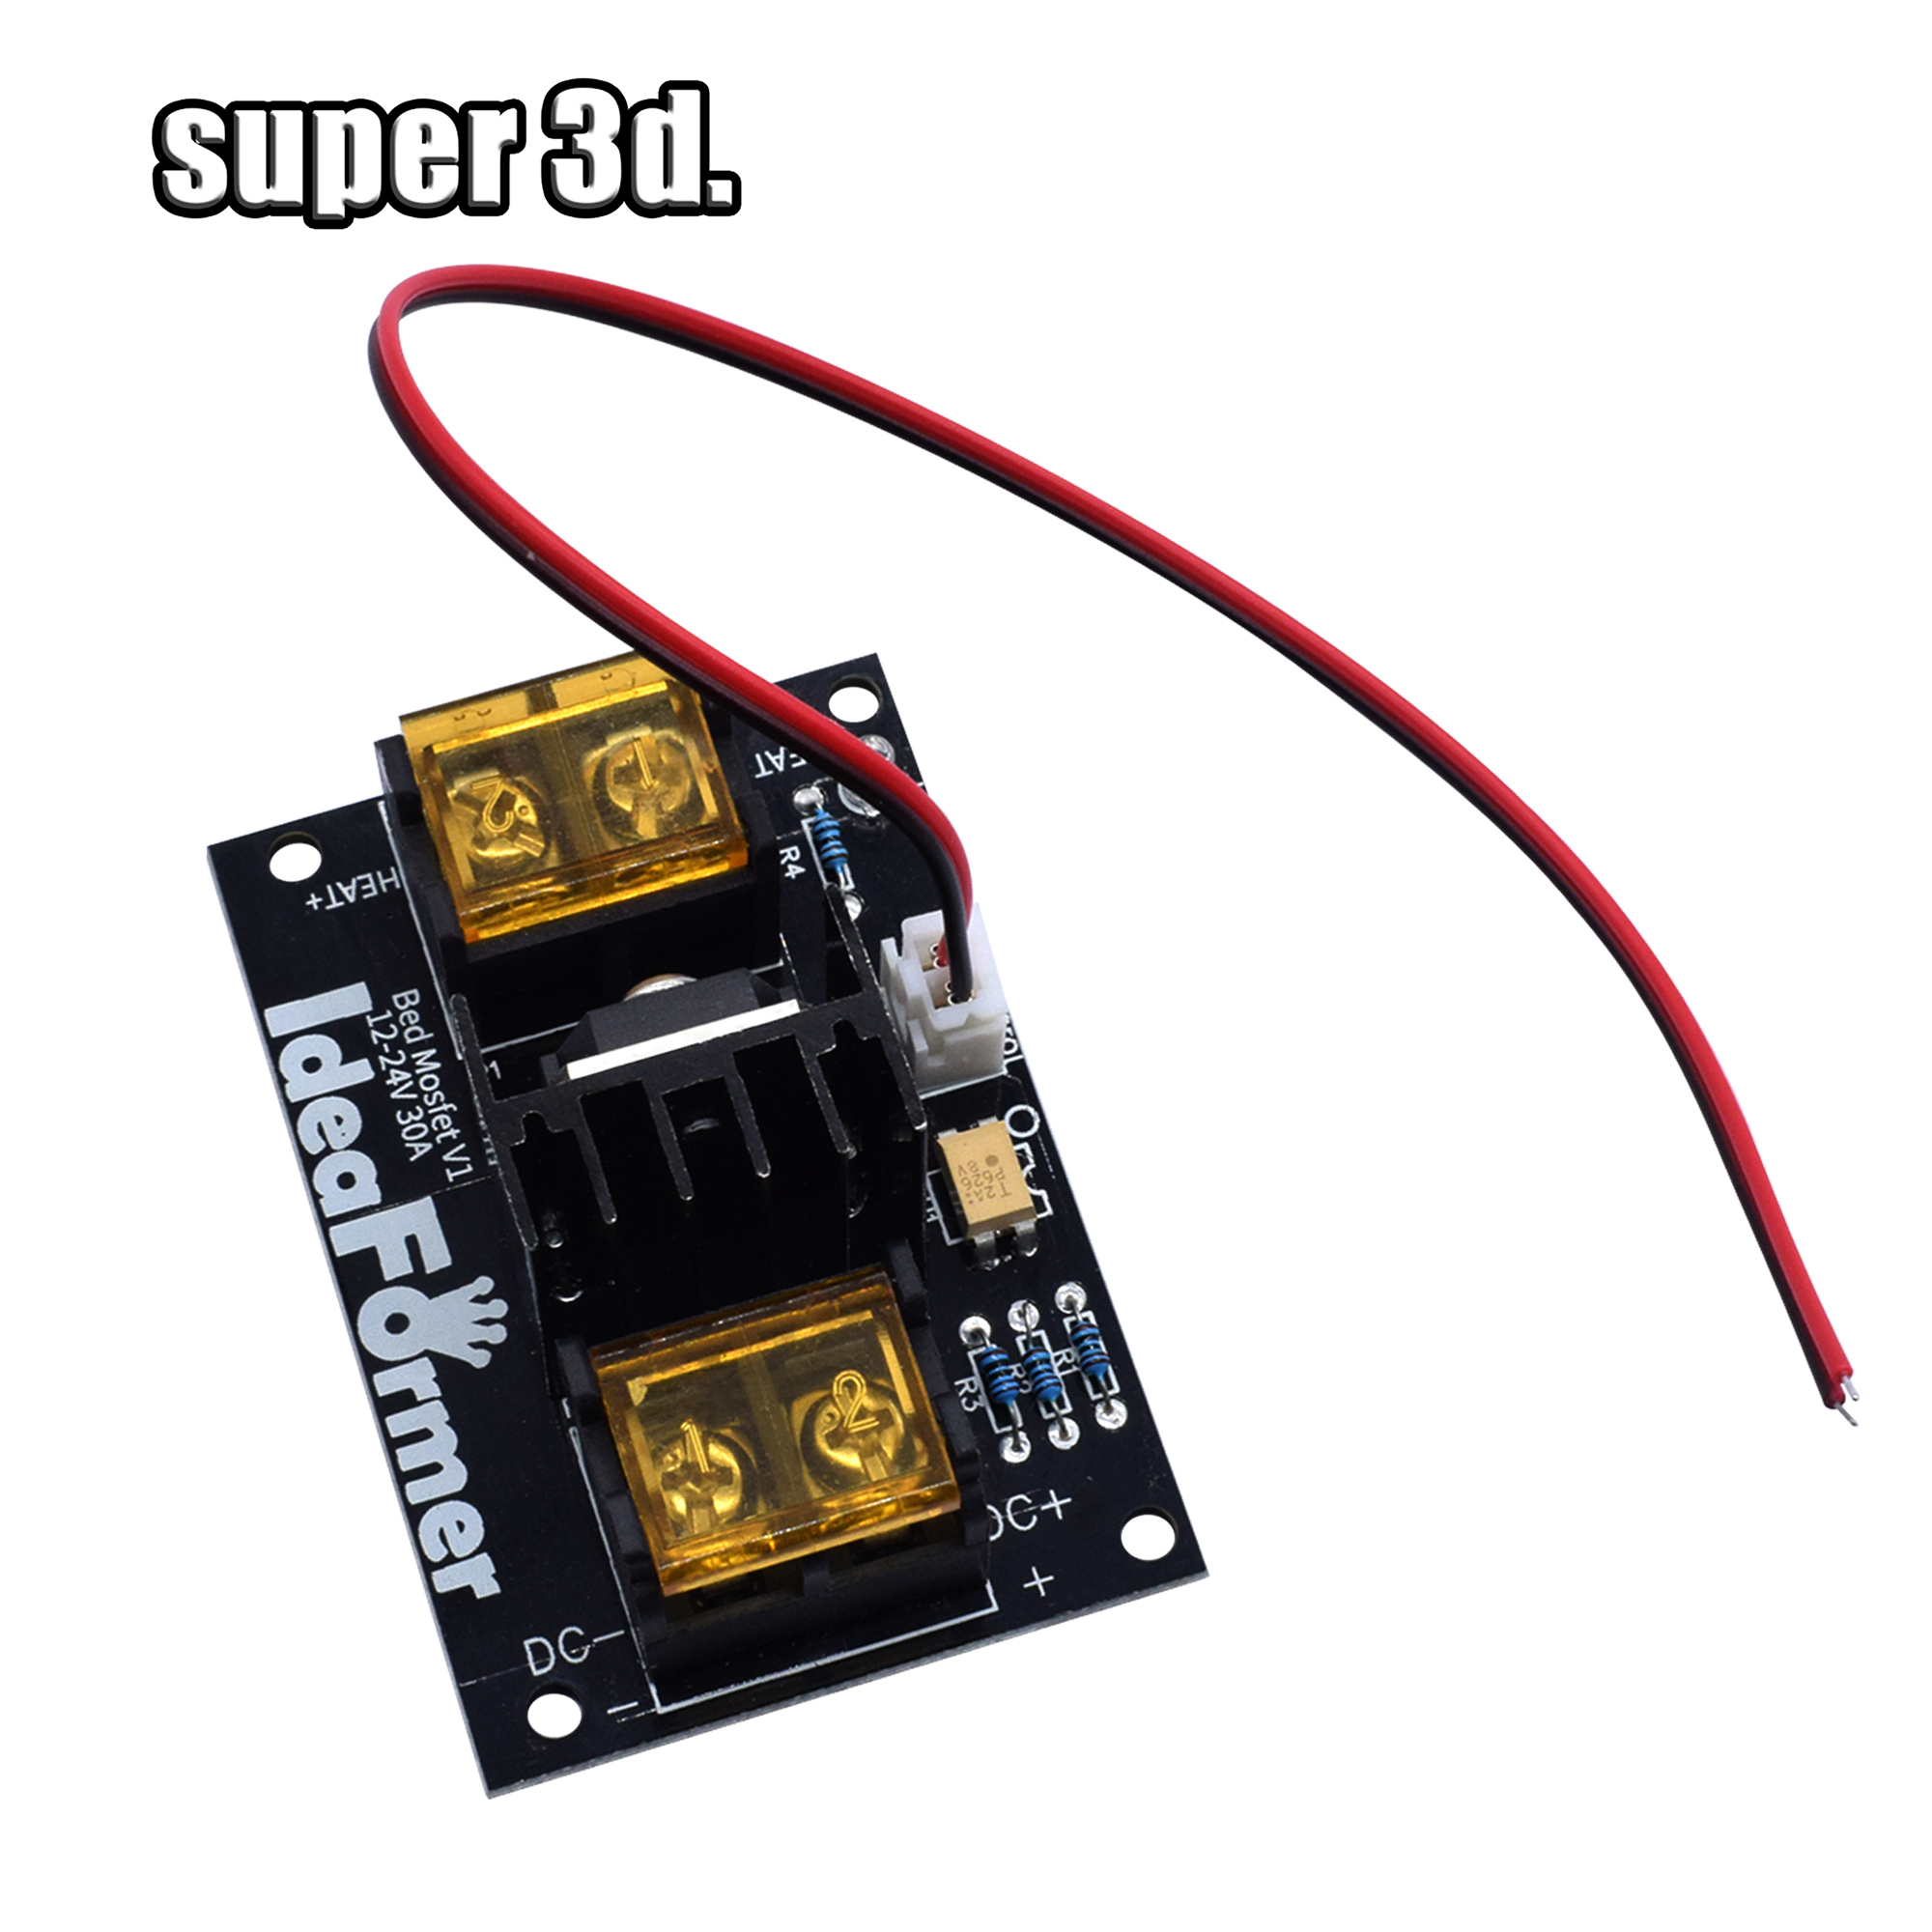 3D Printer Heated Bed Power Module /Hotbed MOSFET 30A Expansion Module Inc 2pin Lead With Cable For Anet A8 A6 A2 Ramps 1.4